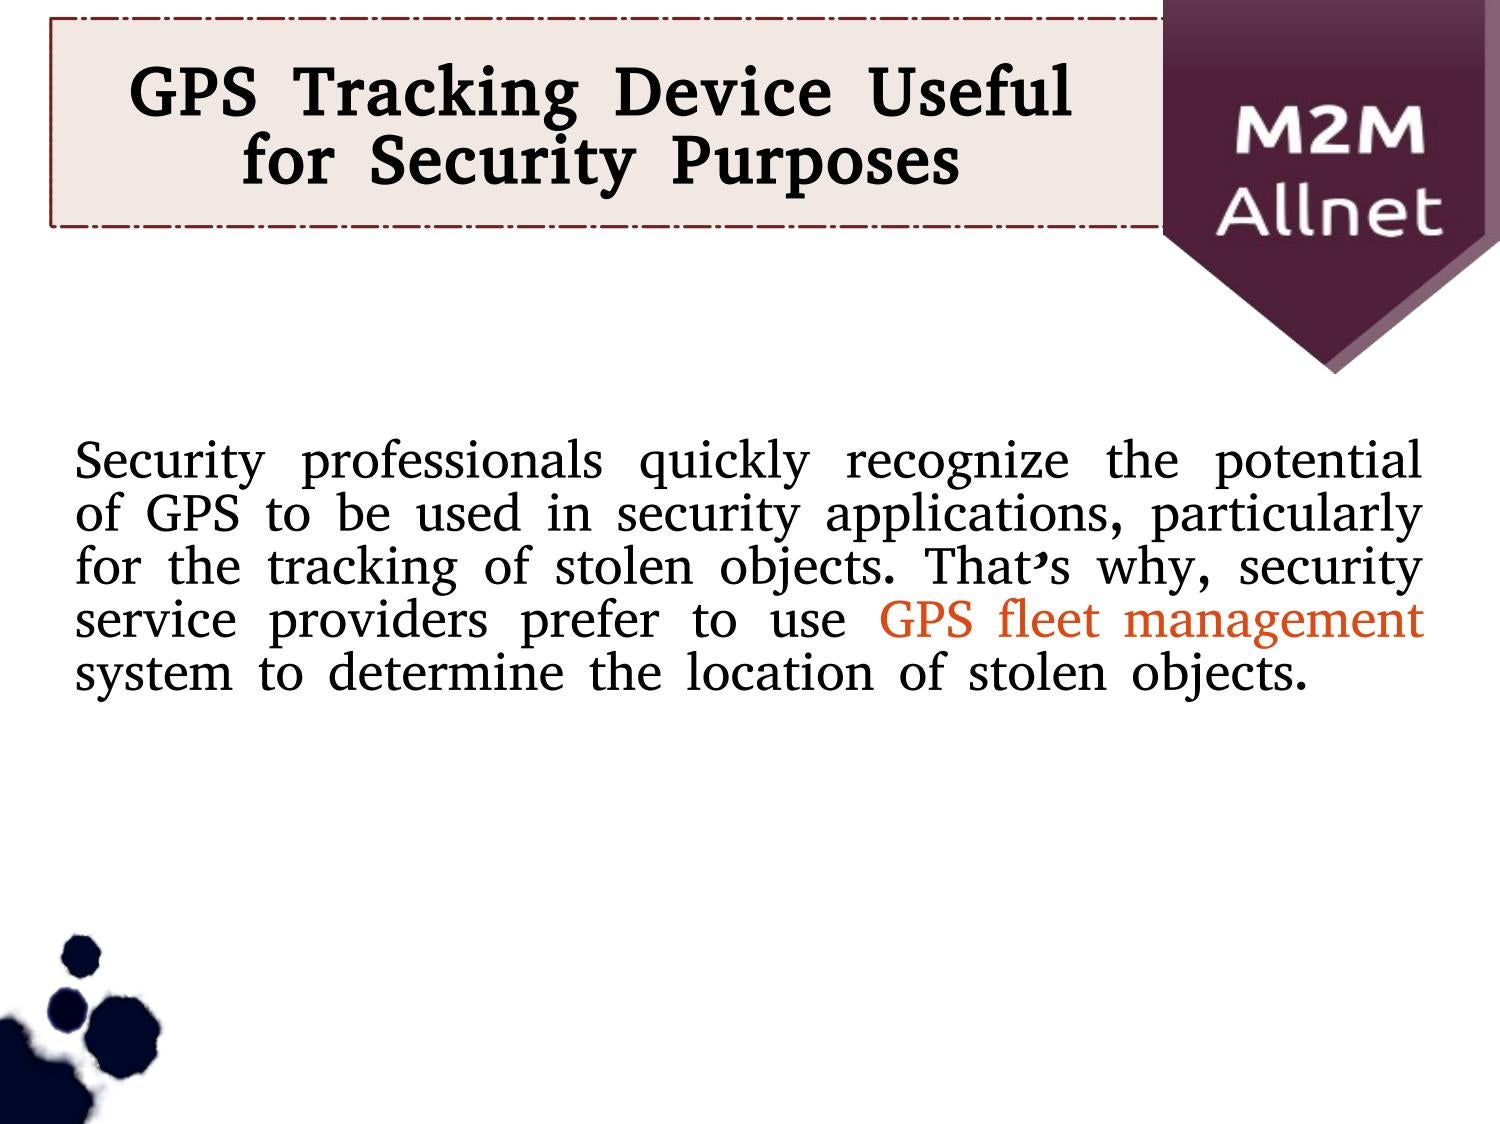 GPS Tracking Device Useful for Security Purposes by M2M